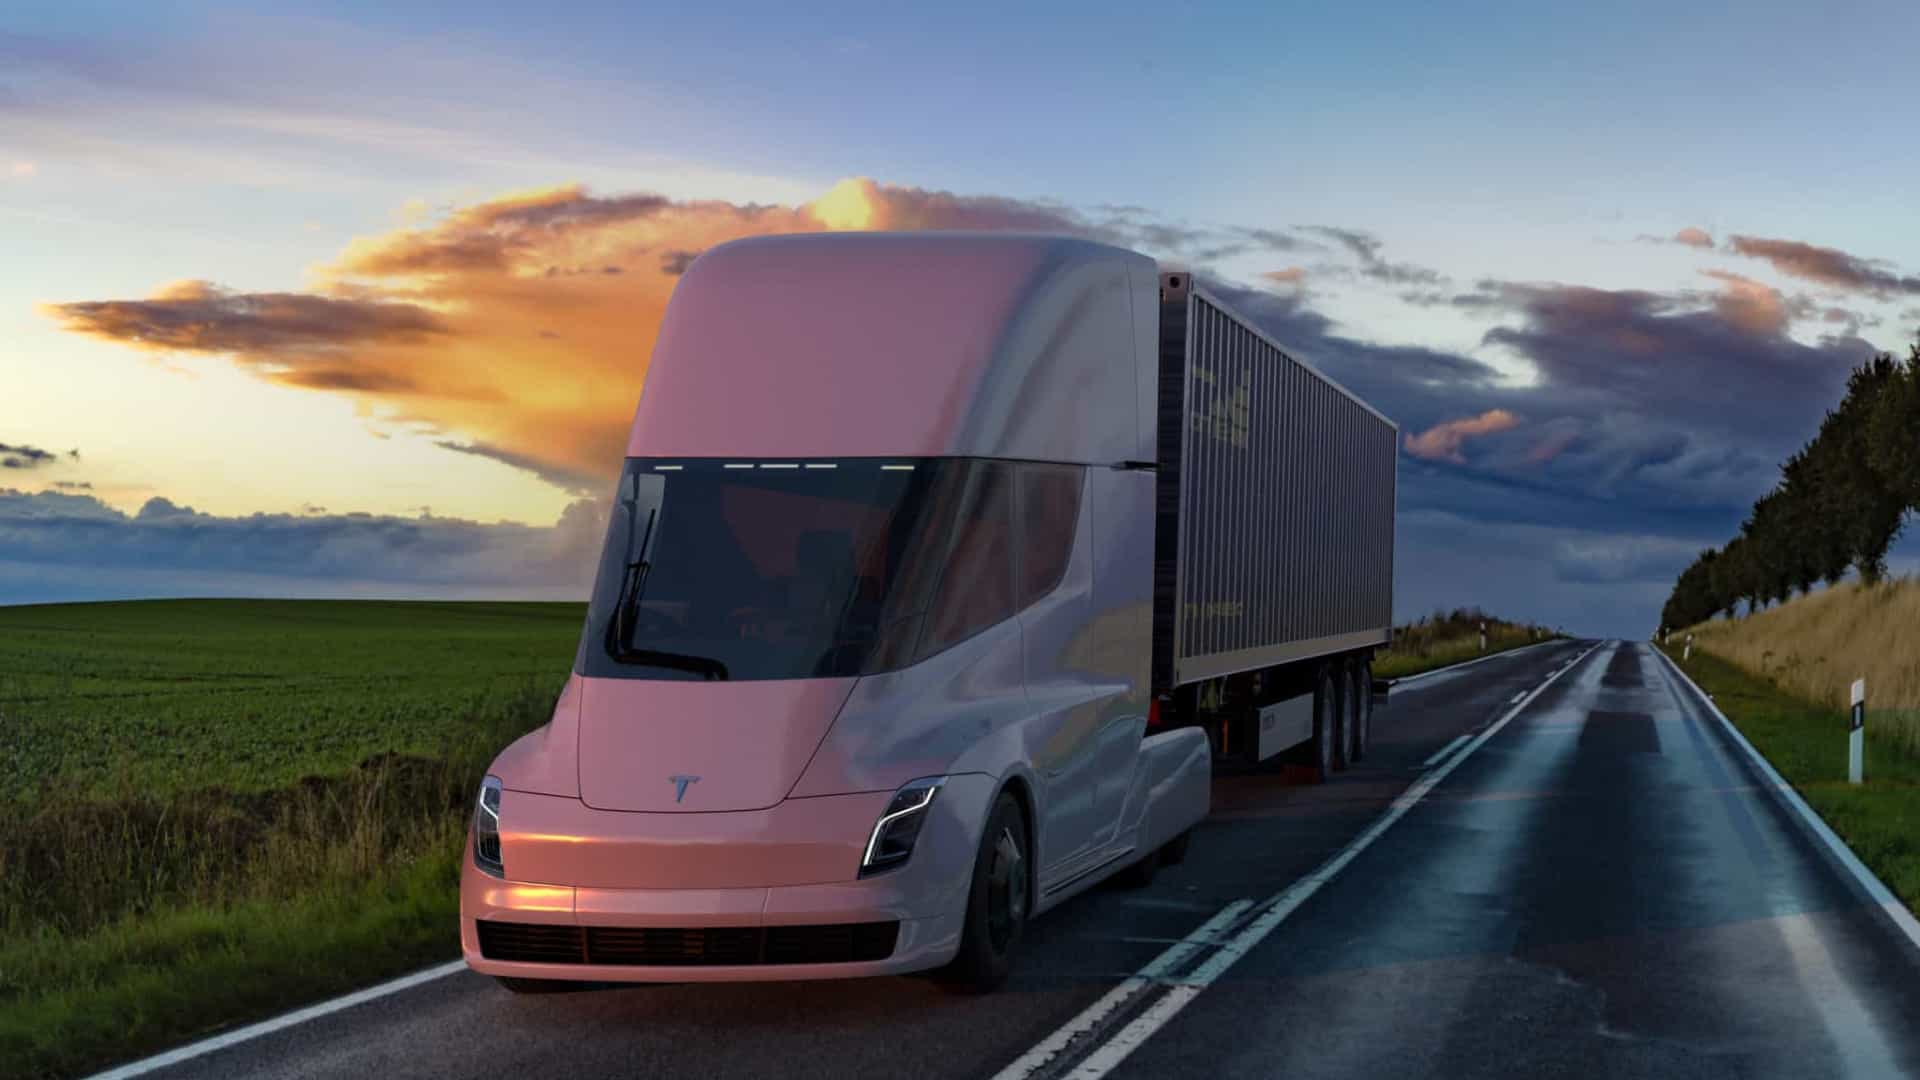 Tesla postponed the launch of the Semi electric truck